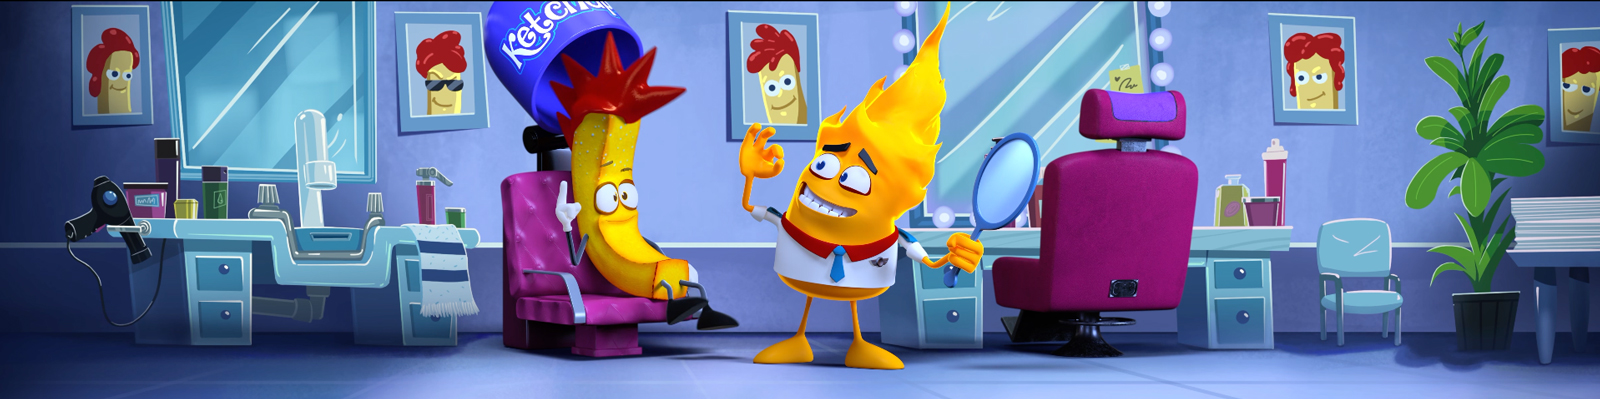 Mr. Heat and Freedom Fry